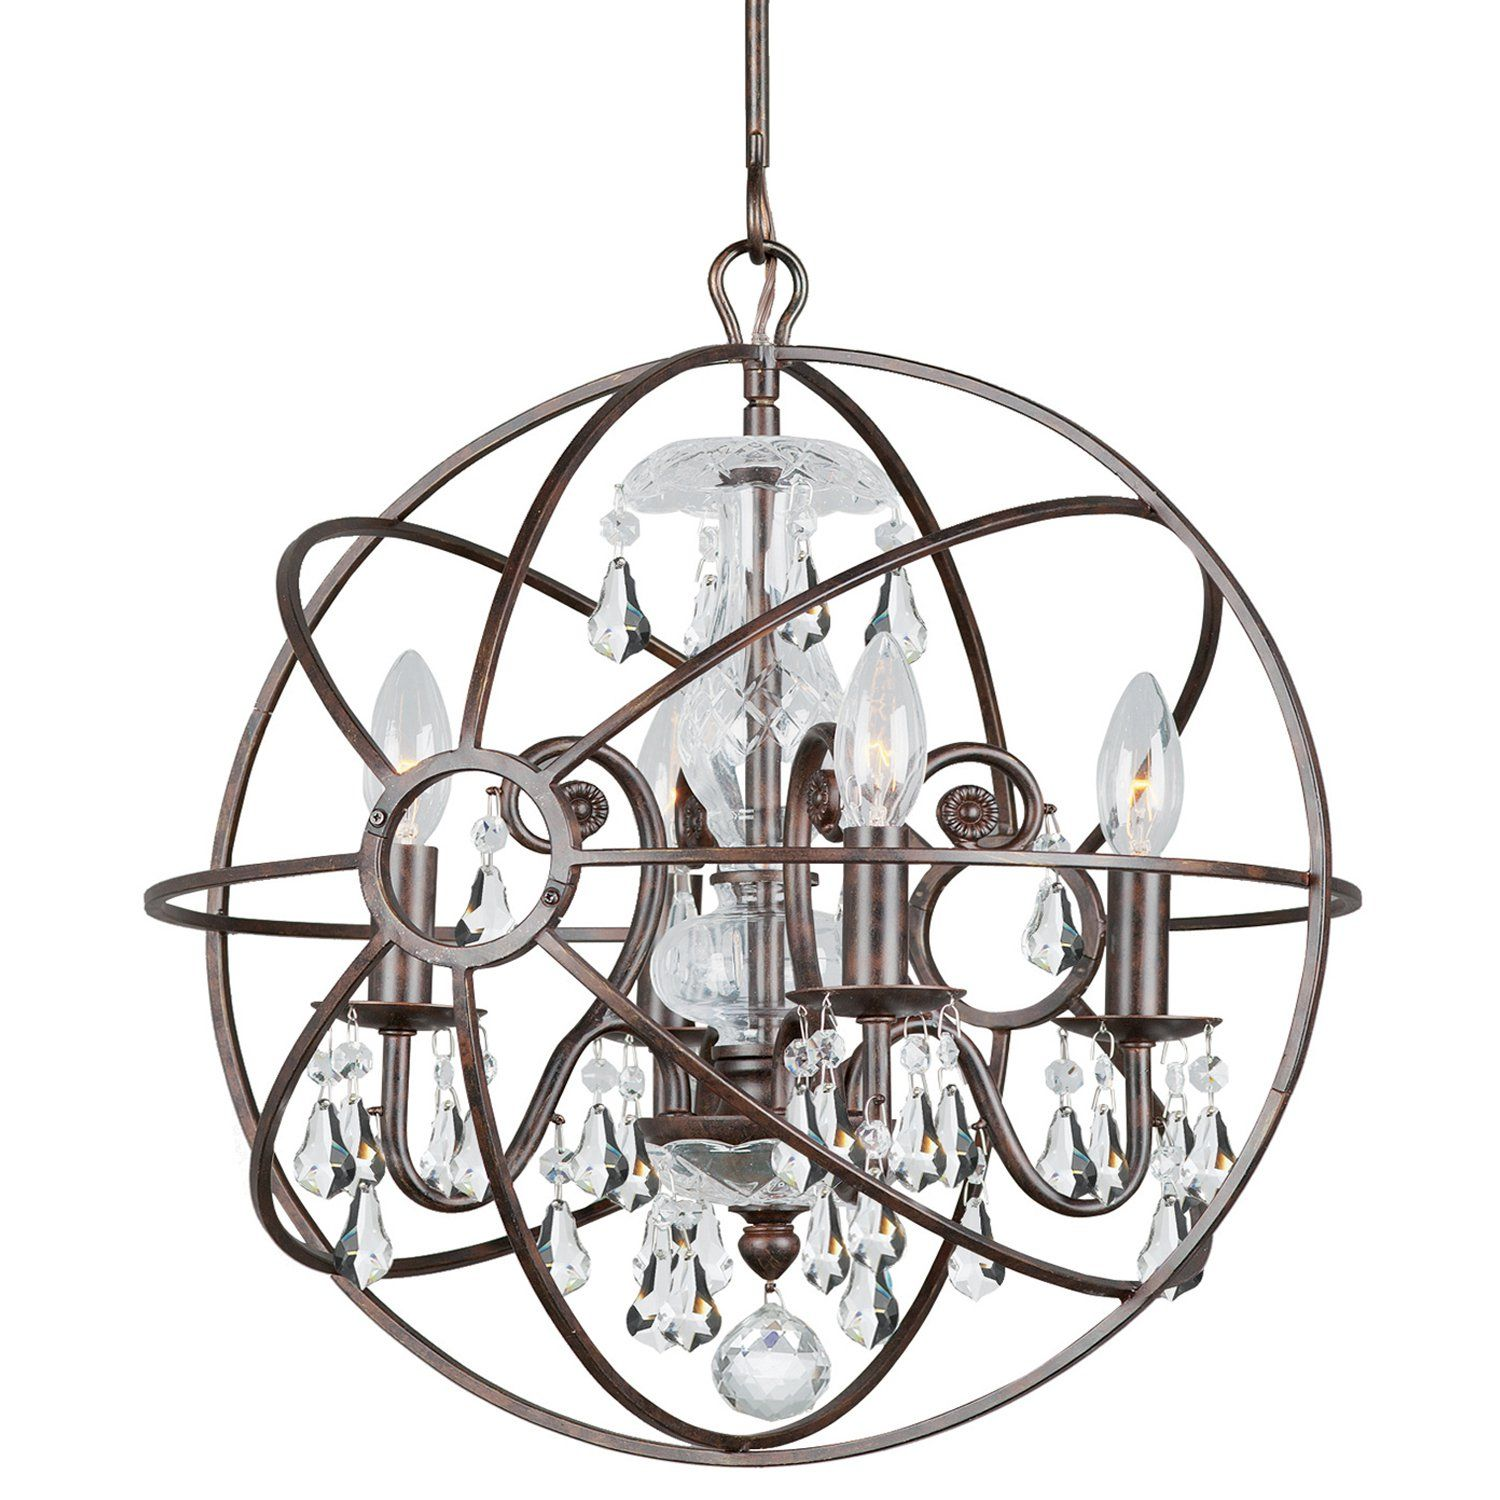 Crystorama 9025 eb cl mwp solaris chandelier with hand painted crystorama 9025 eb cl mwp solaris chandelier with hand painted wrought iron aloadofball Images